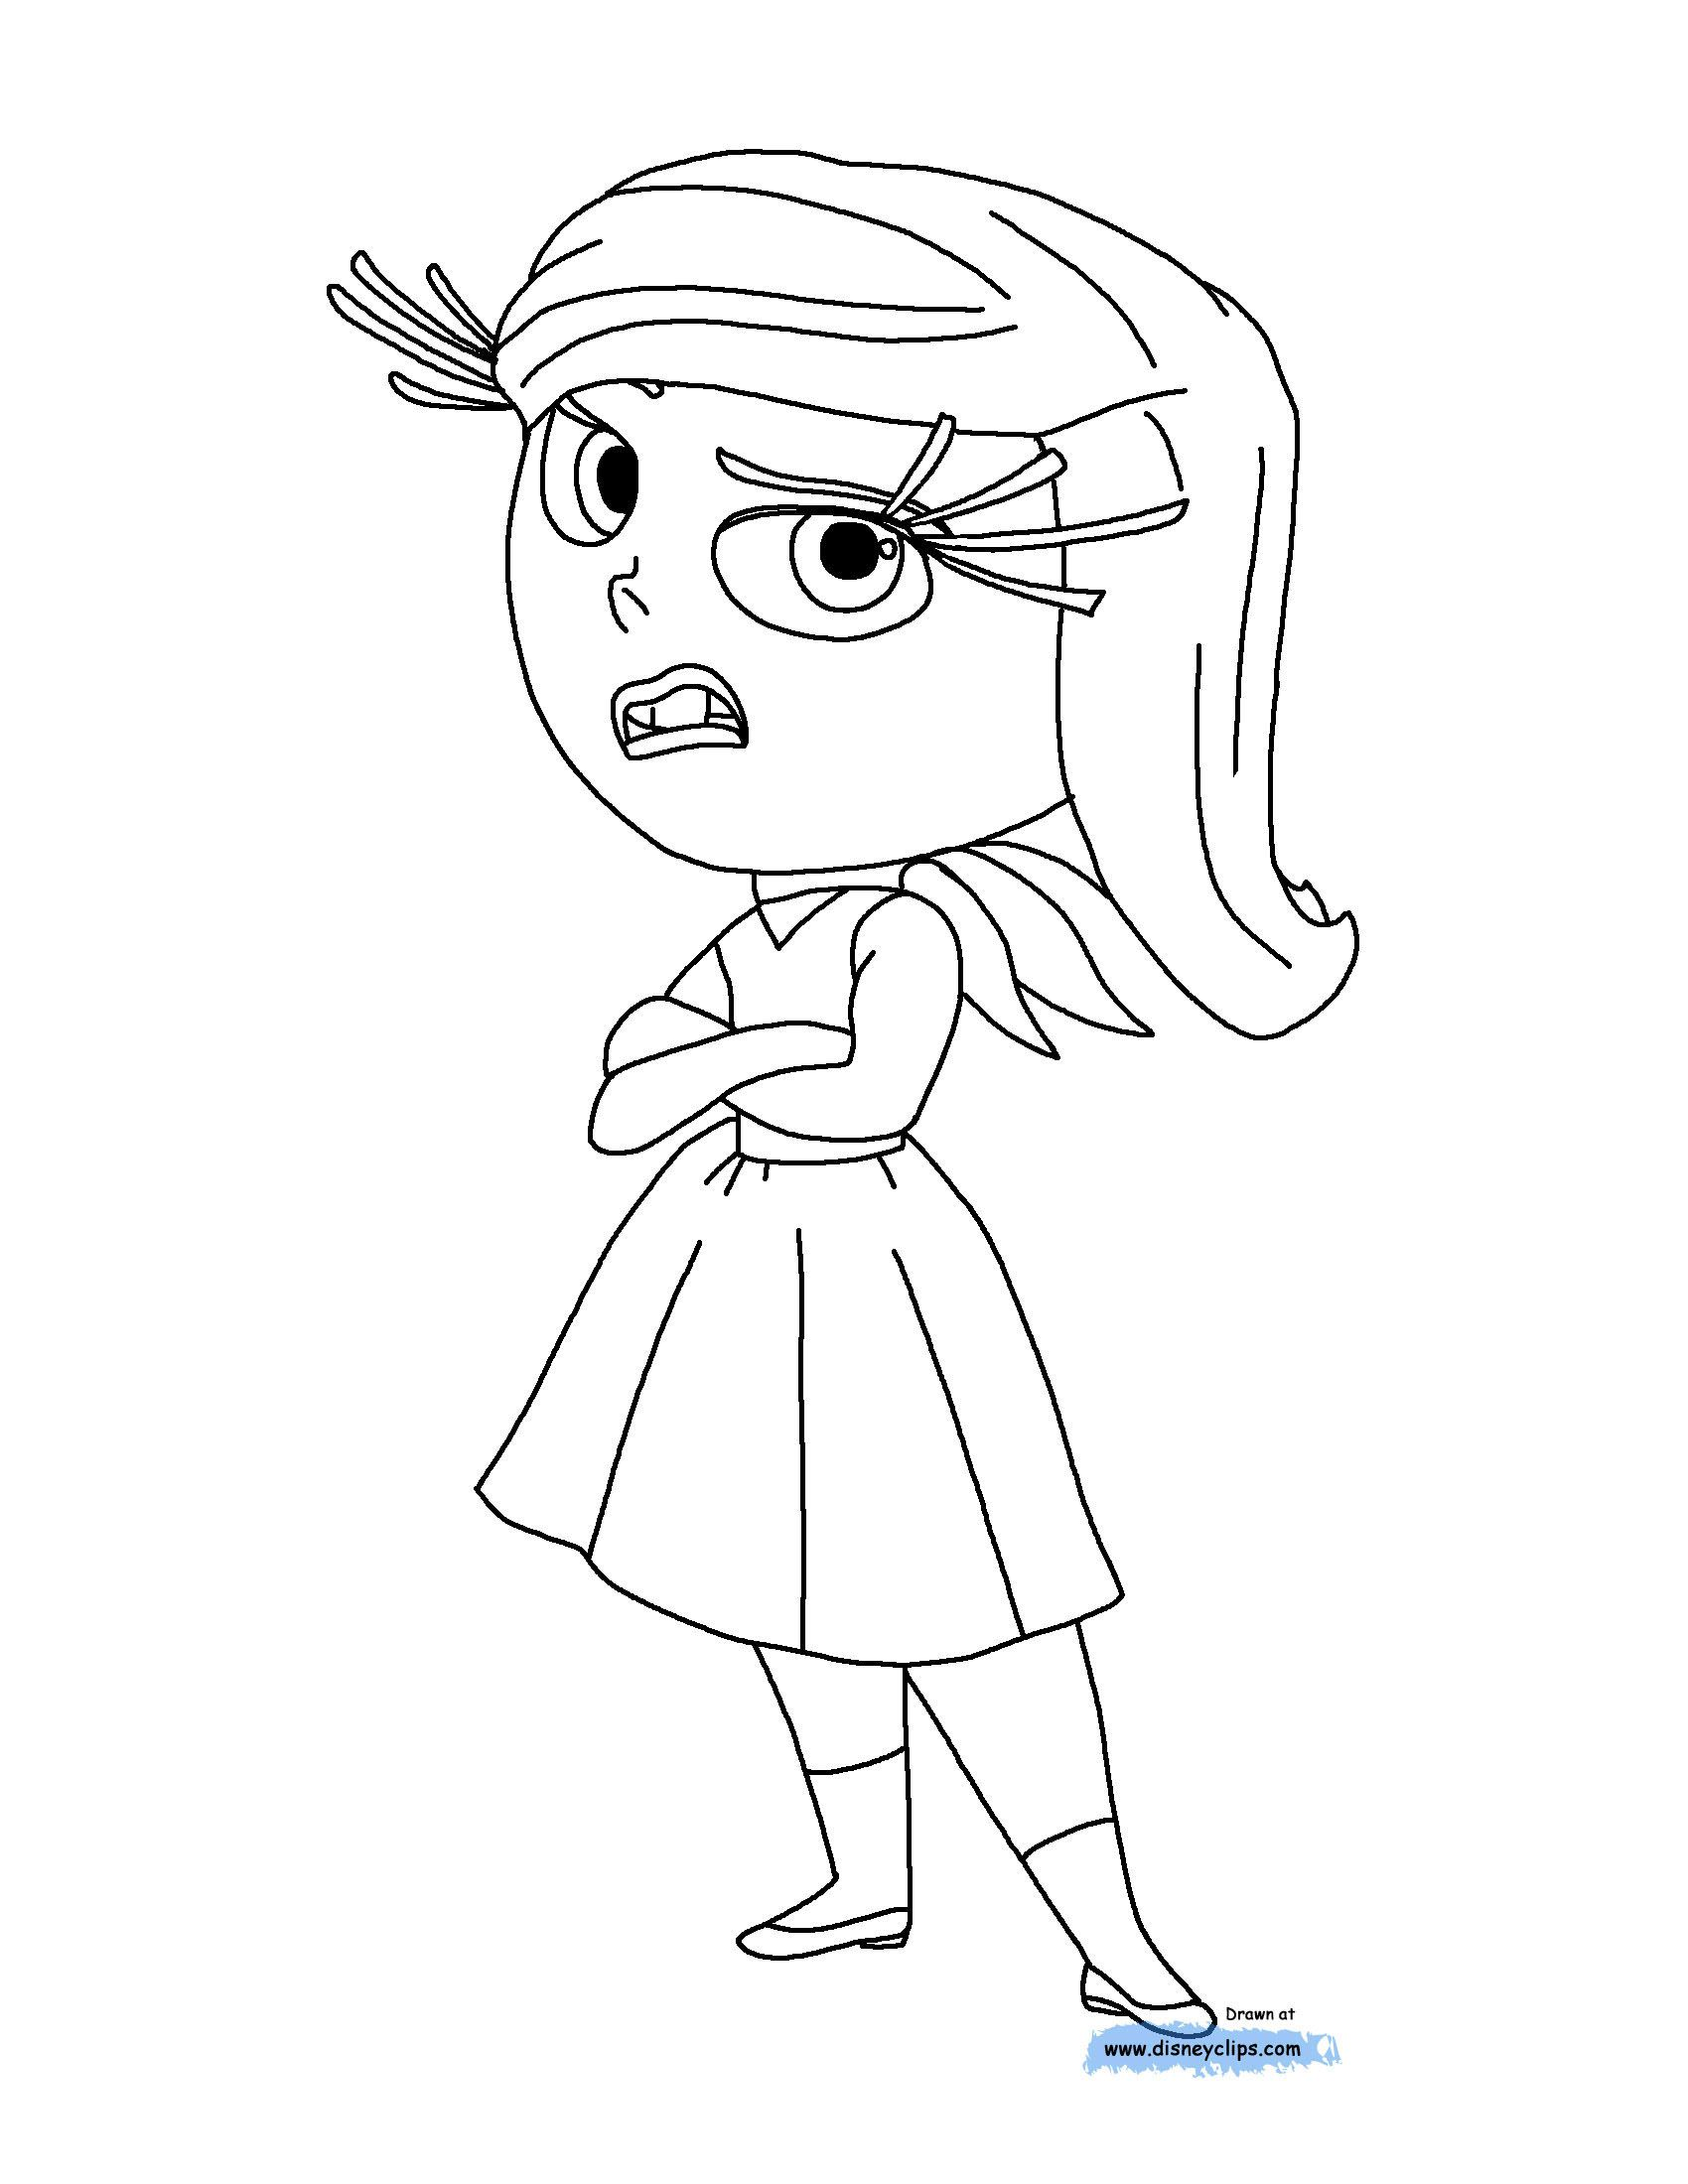 Disney S Inside Out Movie Coloring Pages Create Play Travel Inside Out Coloring Pages Disney Coloring Pages Coloring Pages Inspirational